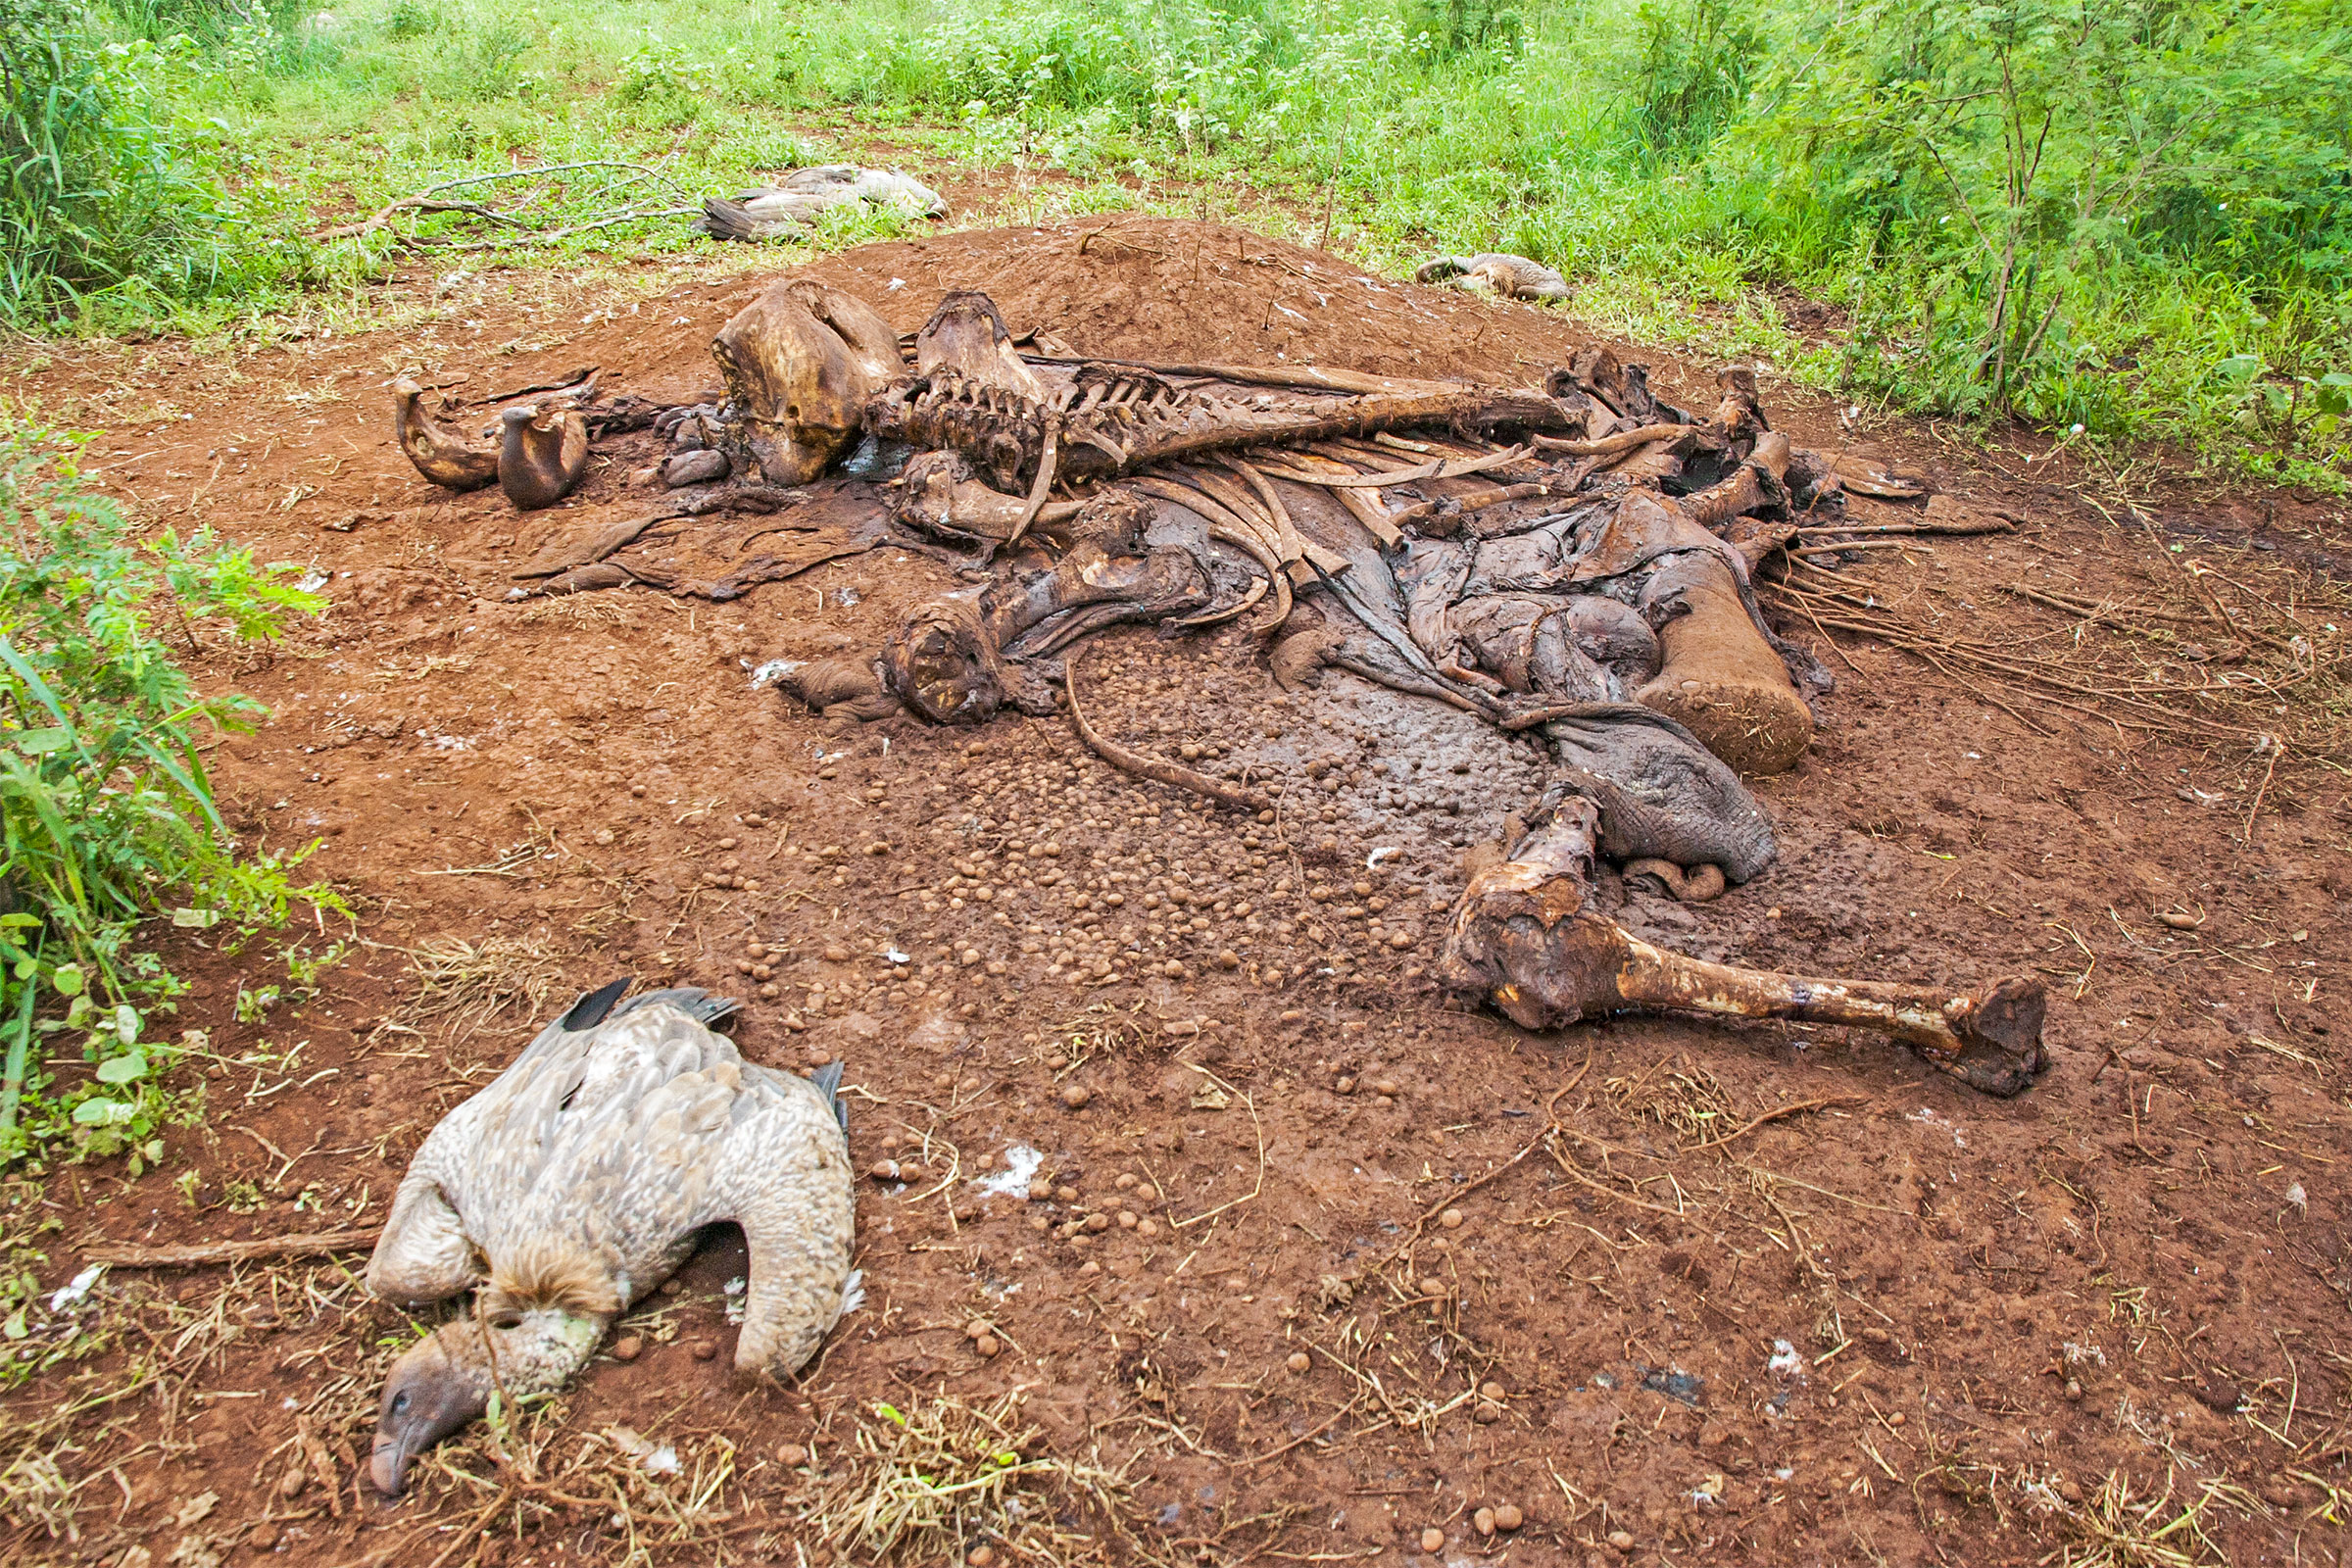 More than 100 White-backed Vultures and Hooded Vultures, both critically endangered, were poisoned in Mbashene, Mozambique in February of 2018. The birds were killed after feeding on a poisoned elephant carcass that was poached for its tusks. Photo: Andre Botha